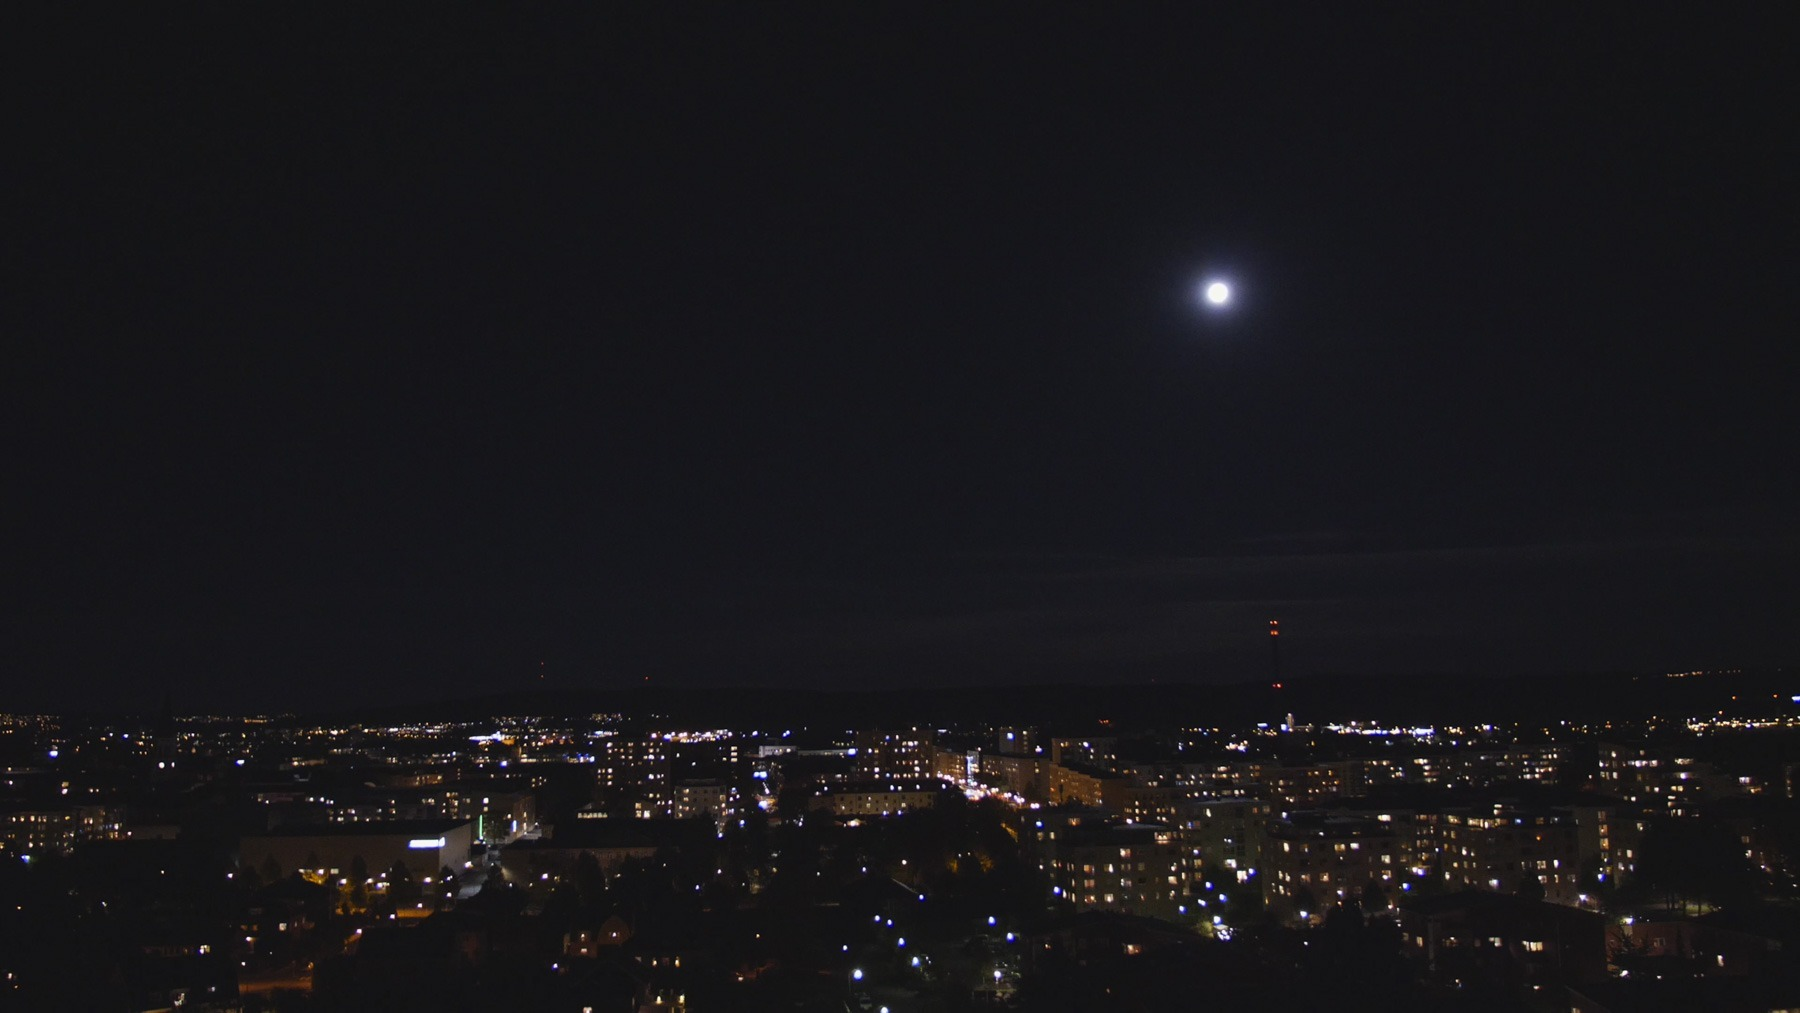 Still frame from Jönköping at Night video